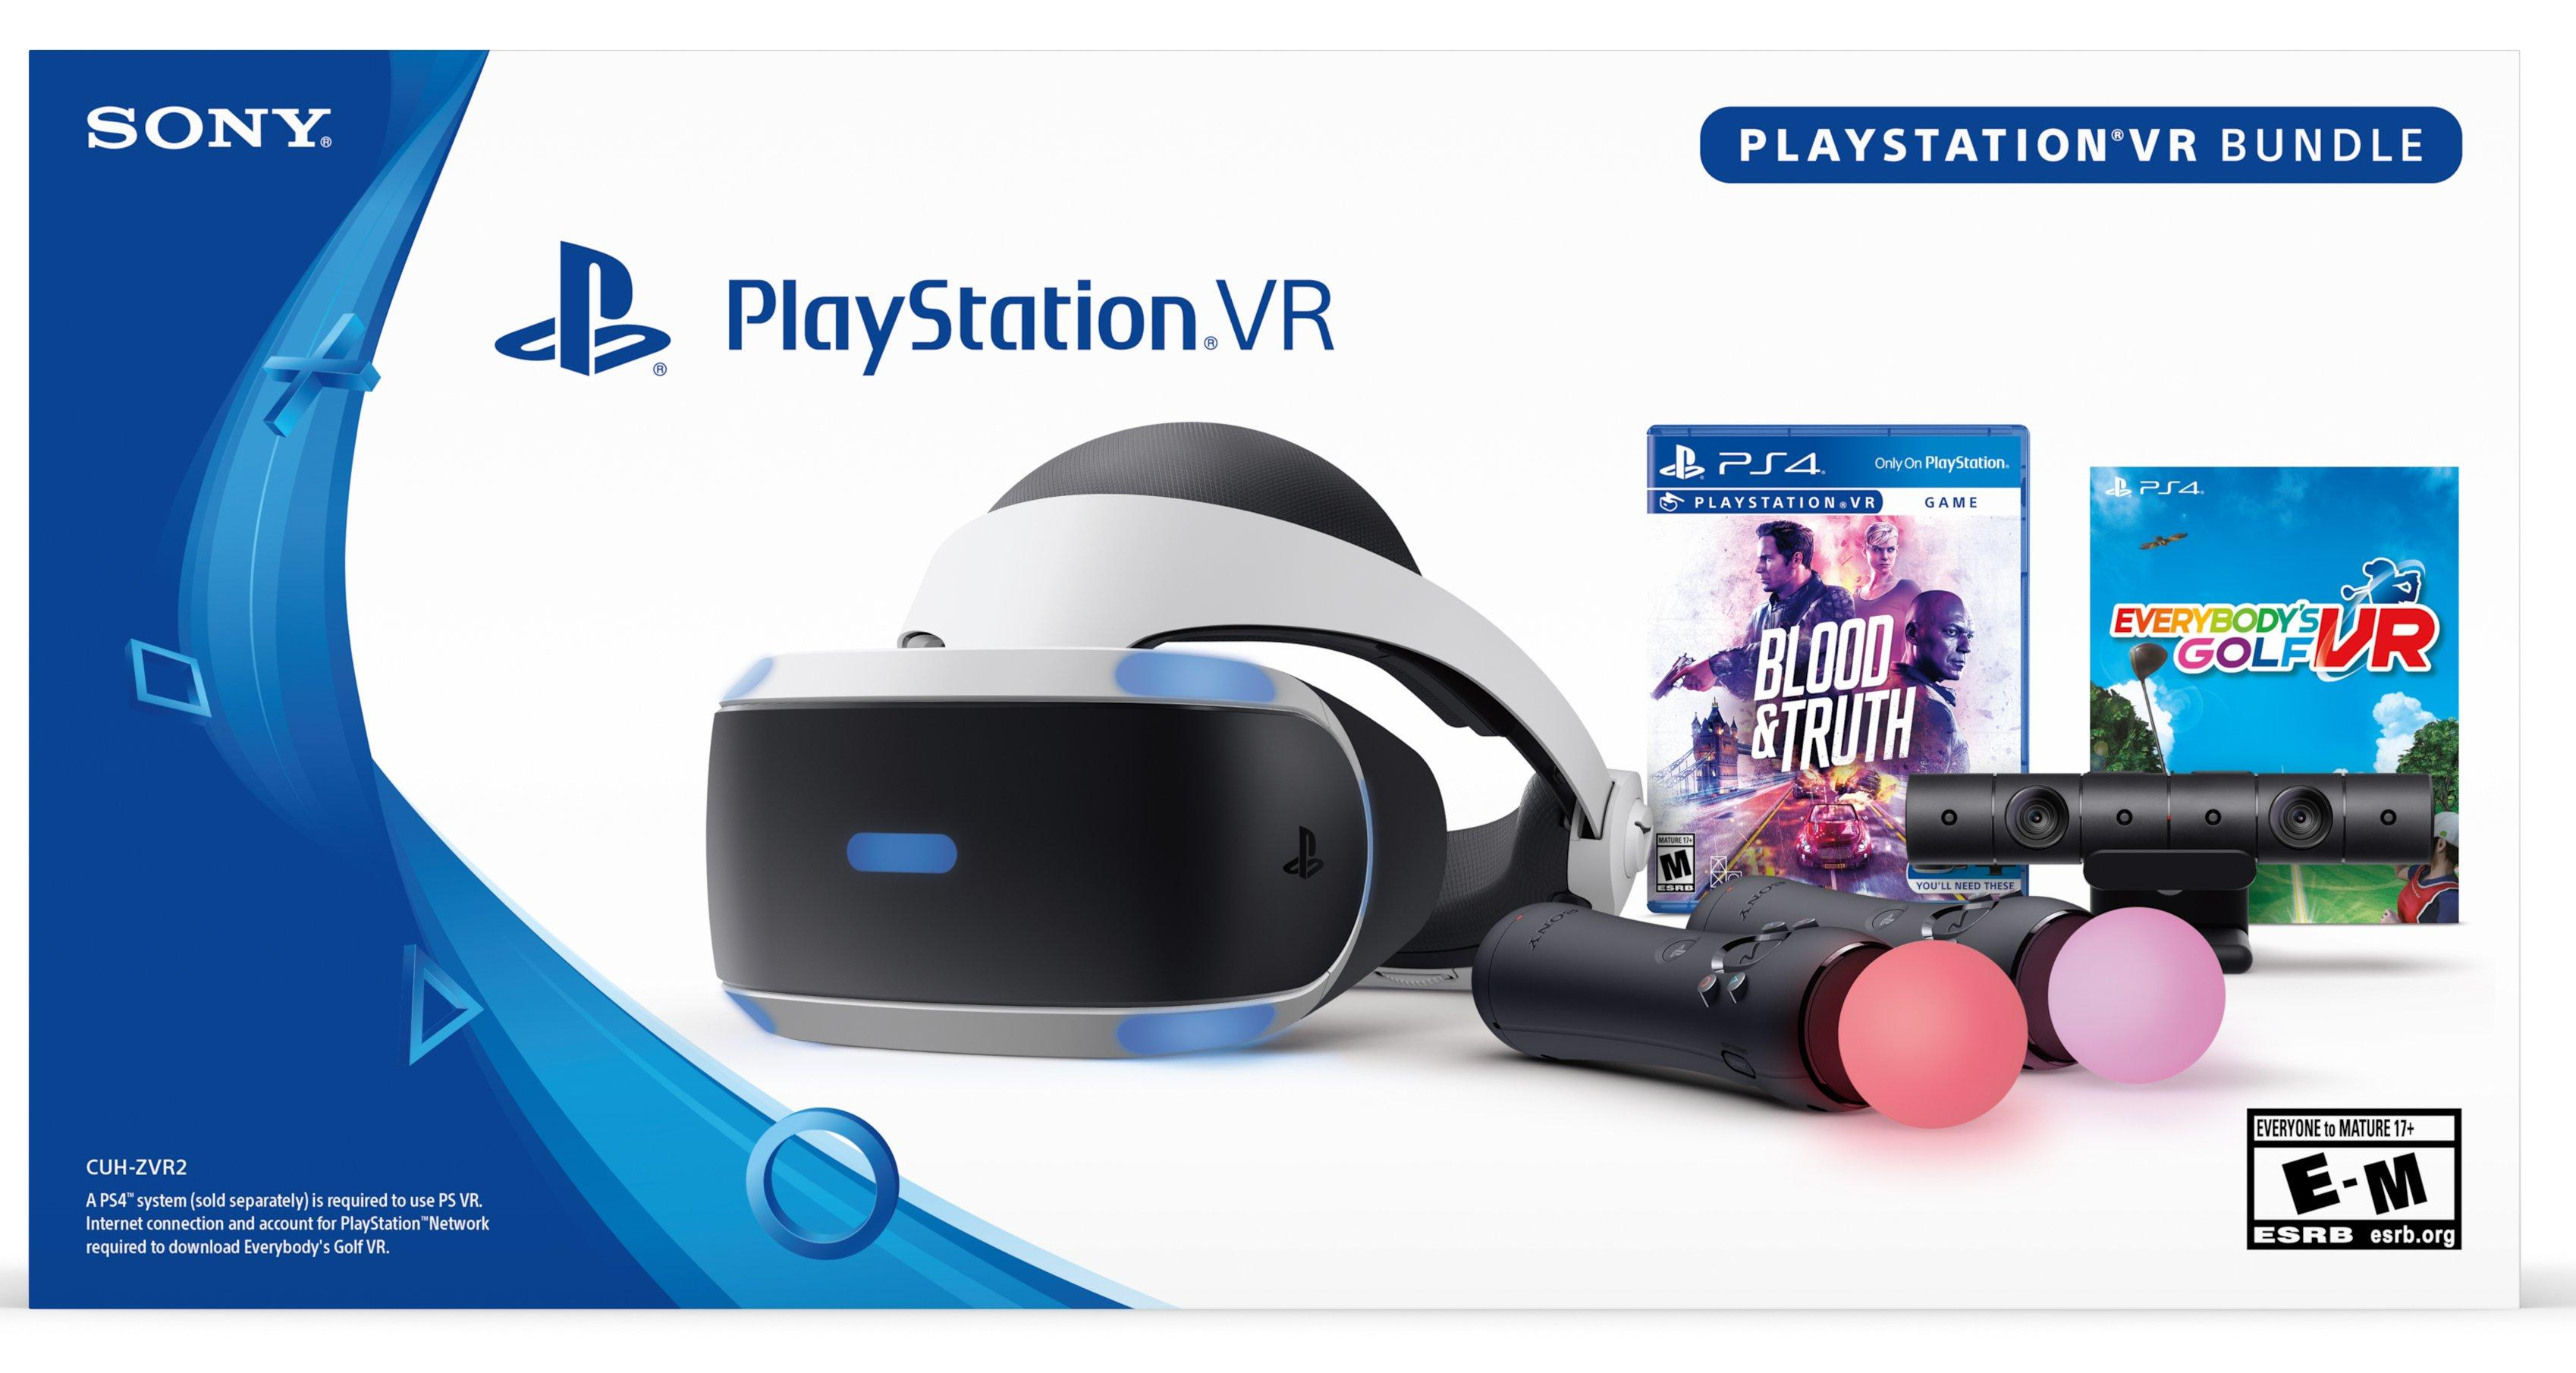 Playstation Vr Blood And Truth And Everybody Golf Vr Bundle Playstation 4 Gamestop